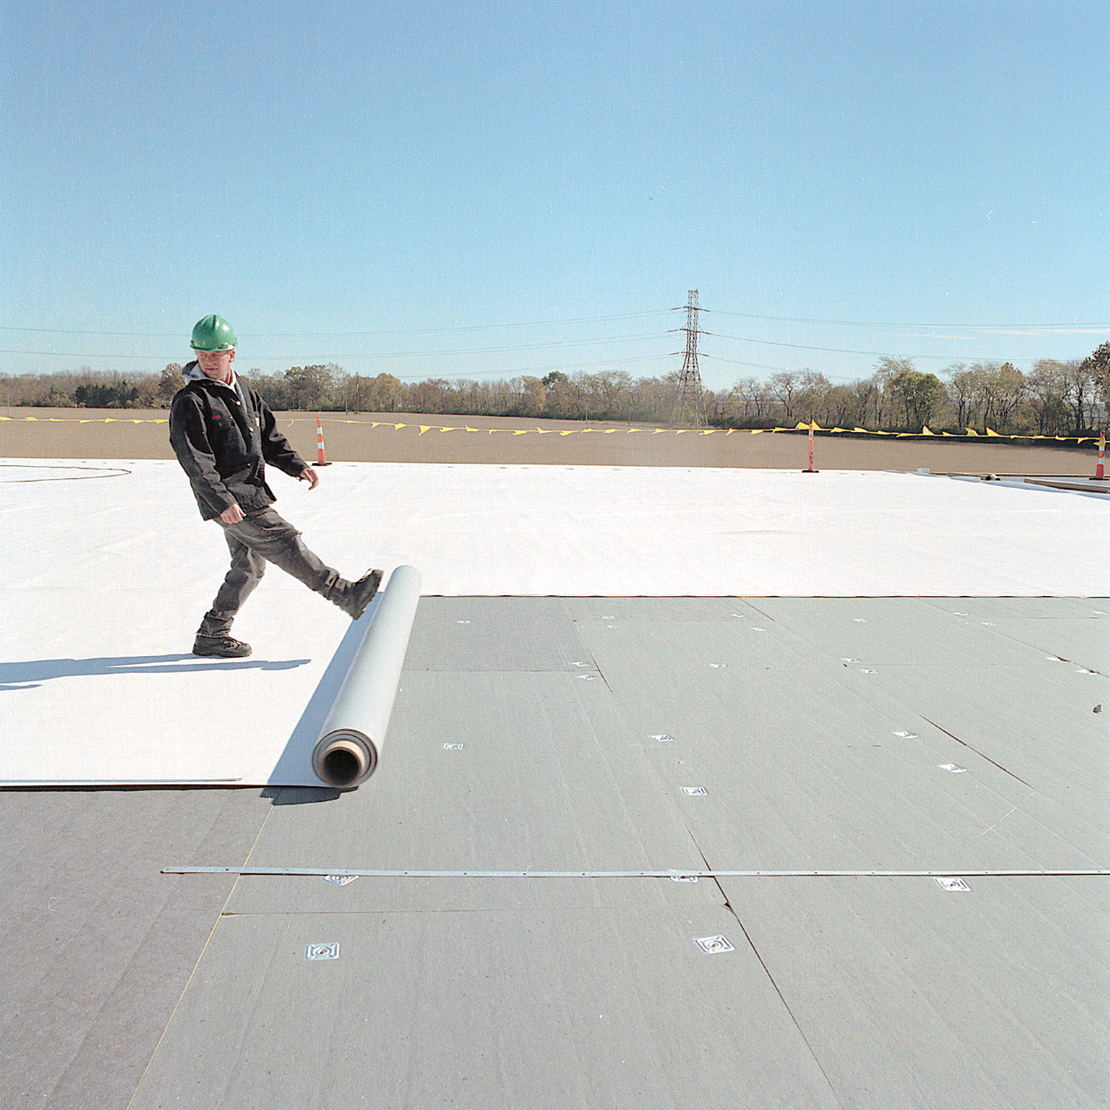 TPO Roofing Material kick out & Virginia Roofing u0026 Siding Company u2013 Thermoplastic Polyolefin (TPO ... memphite.com